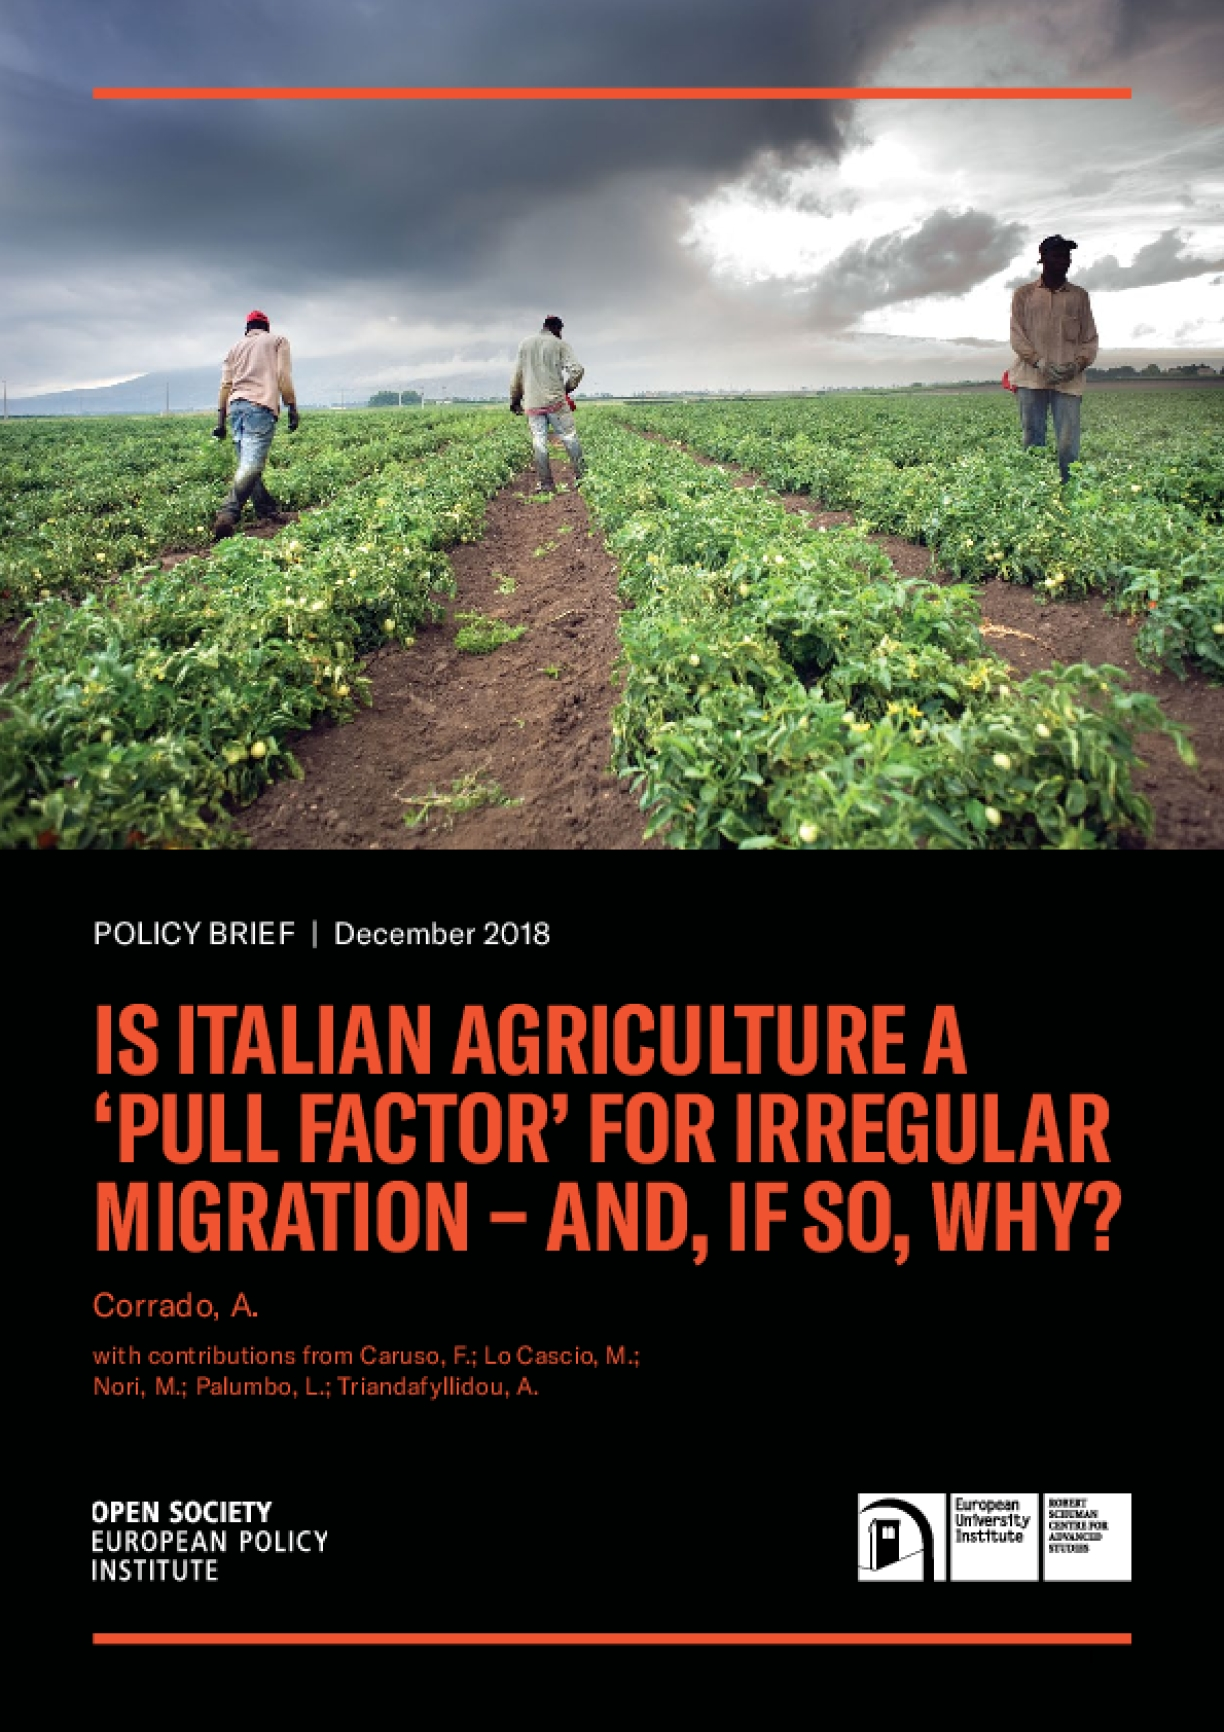 """Policy Brief: Is Italian Agriculture a """"Pull Factor"""" for Irregular Migration -- And, If So, Why?"""